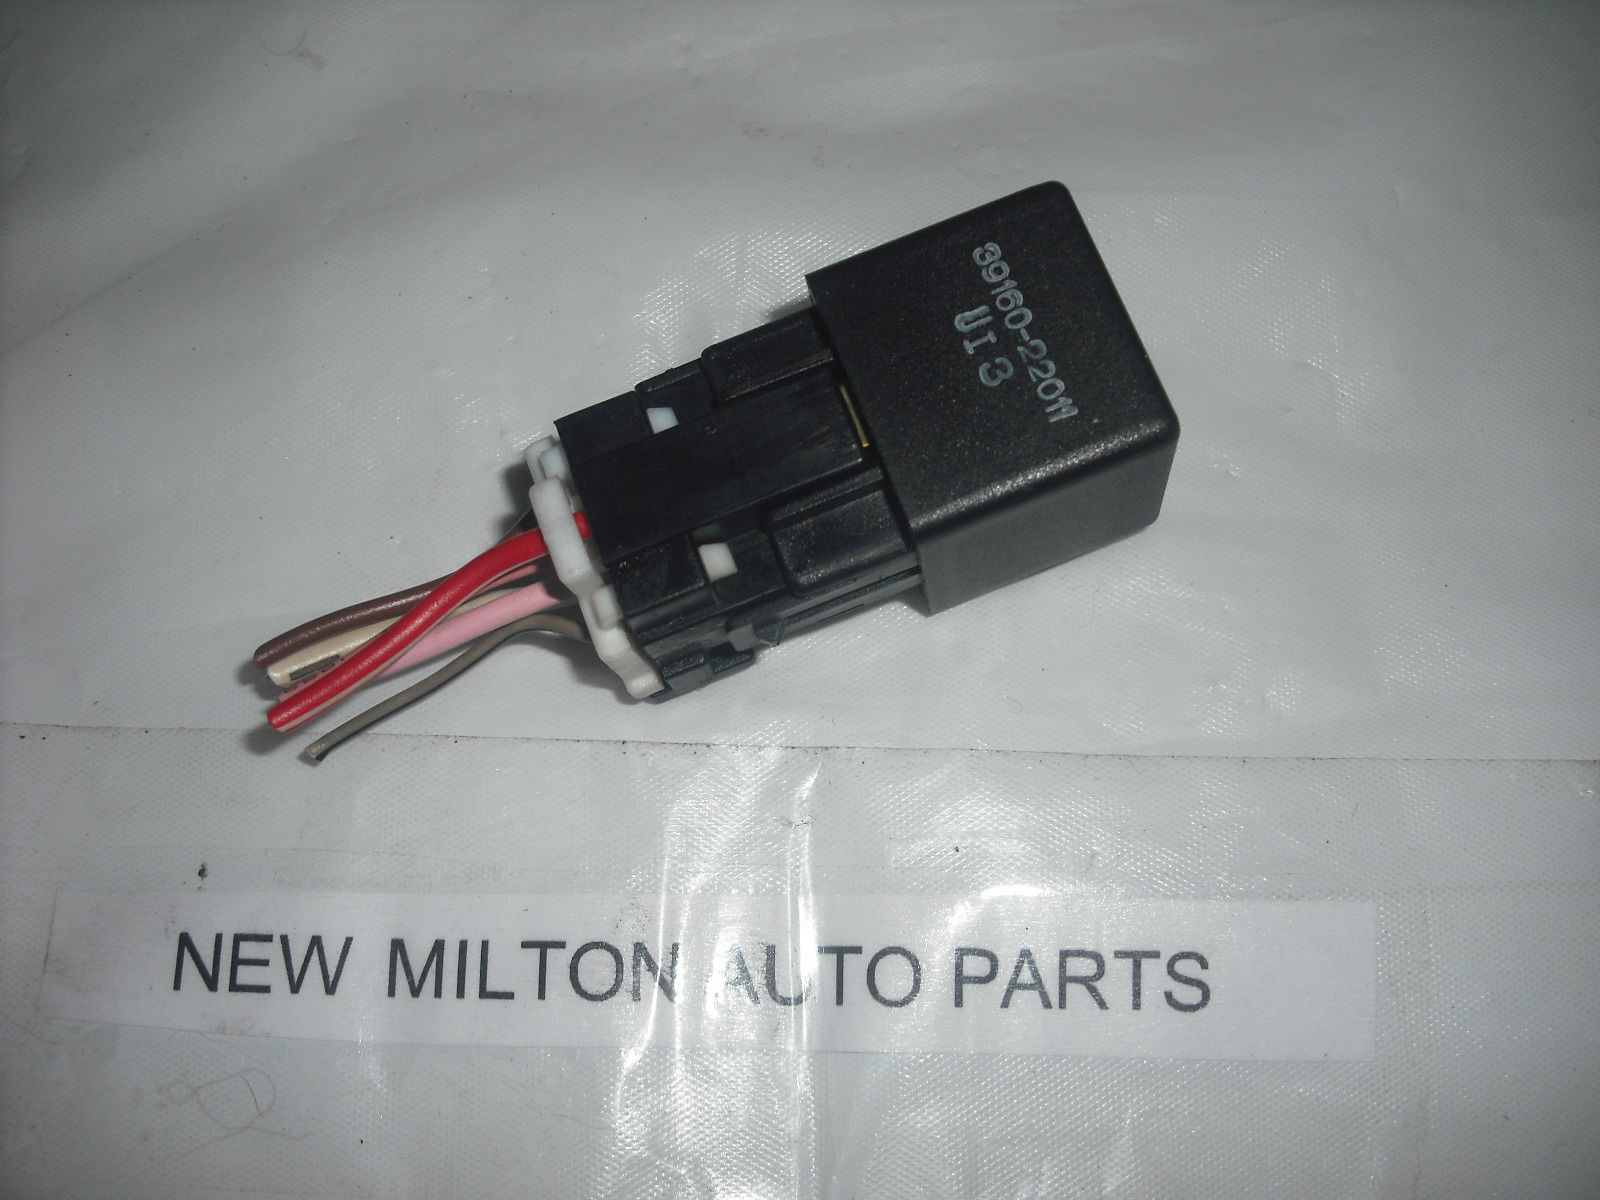 HYUNDAI COUPE TIBURON MATRIX FUEL PUMP RELAY 3916022011